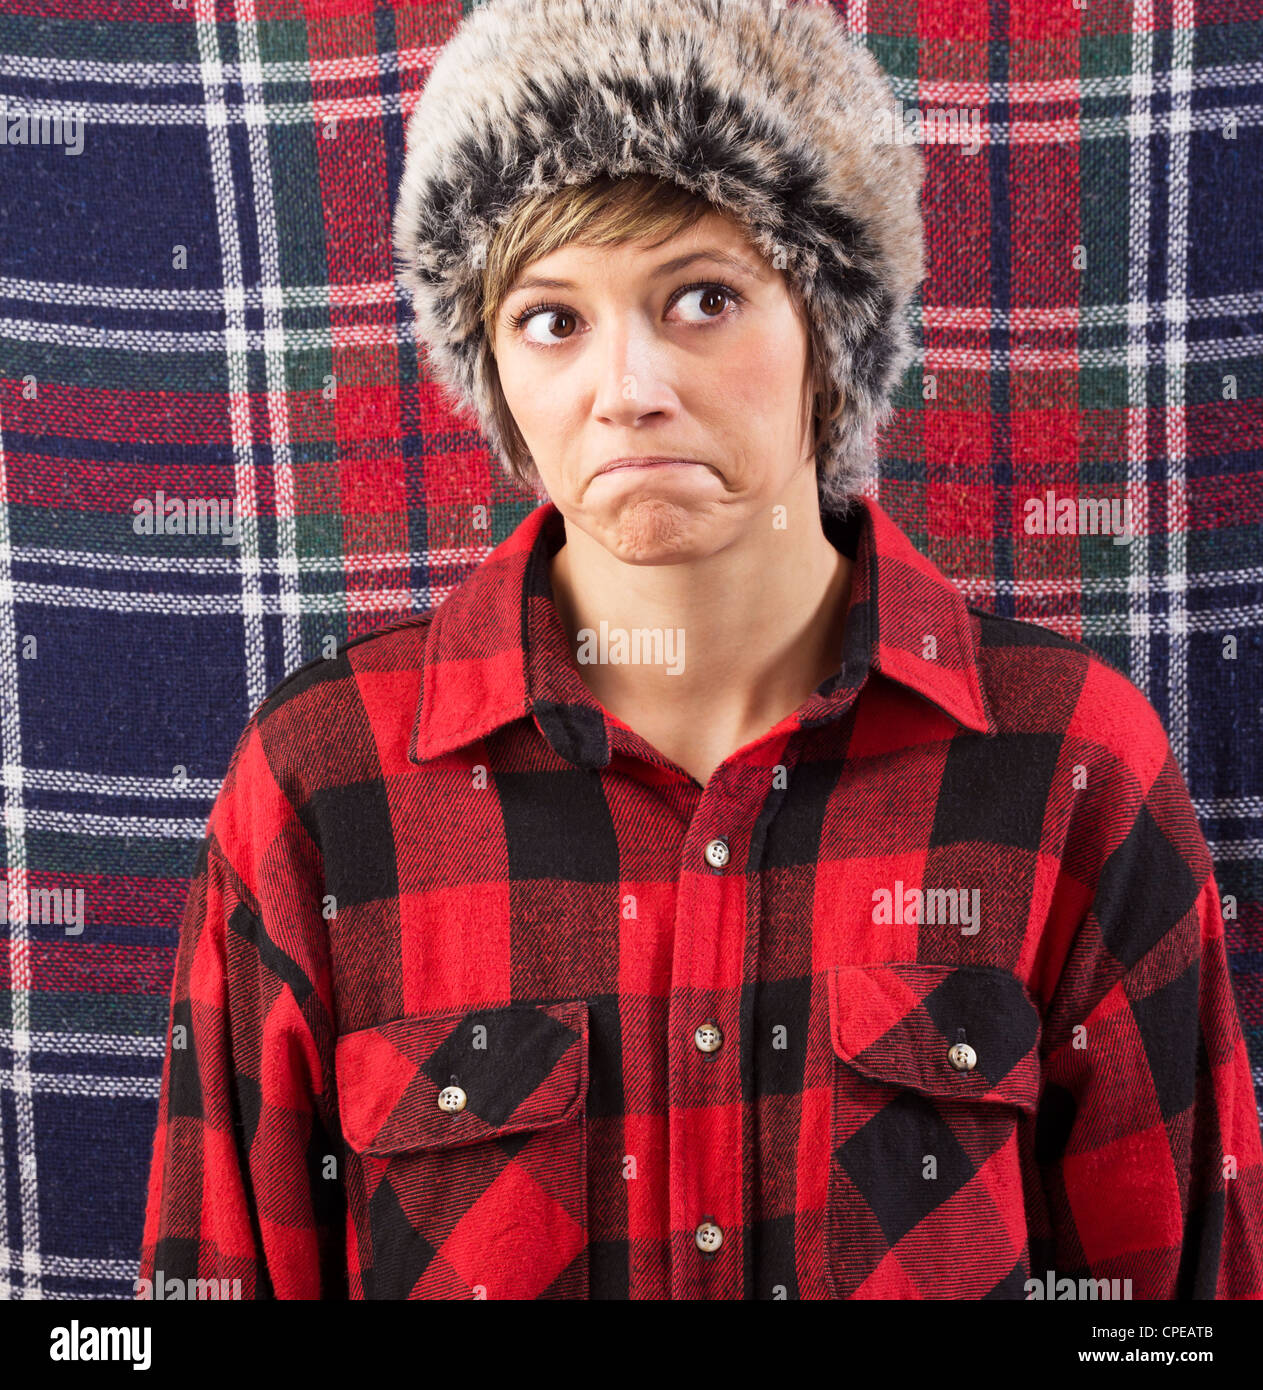 Skeptical pouting young woman wearing a checkered lumberjack shirt and fur hat. Funny studio shot against a patterned - Stock Image